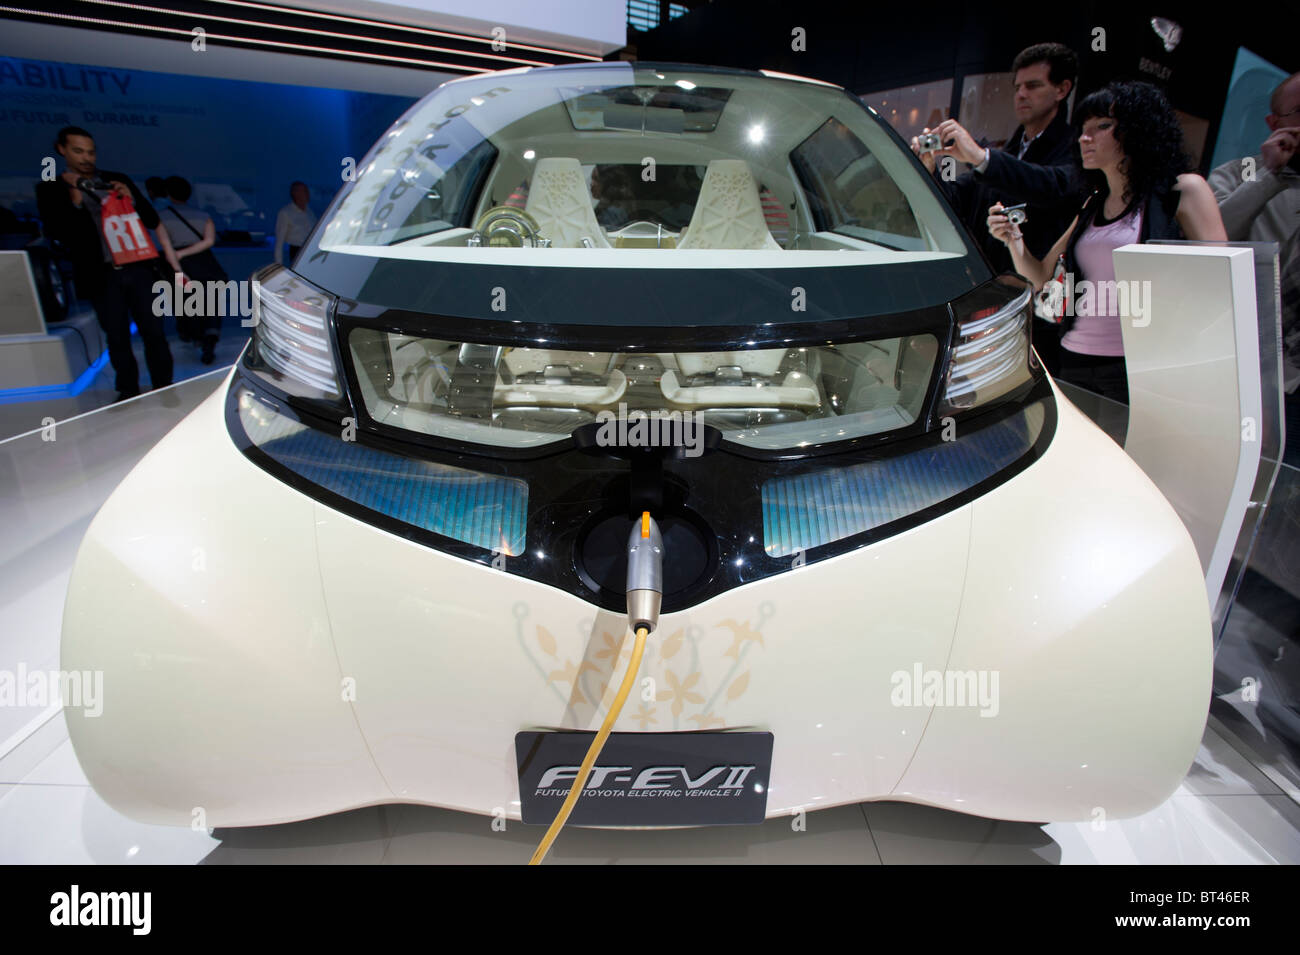 Future Toyota Electric Vehicle or FT-EVII at Paris Motor Show 2010 - Stock Image